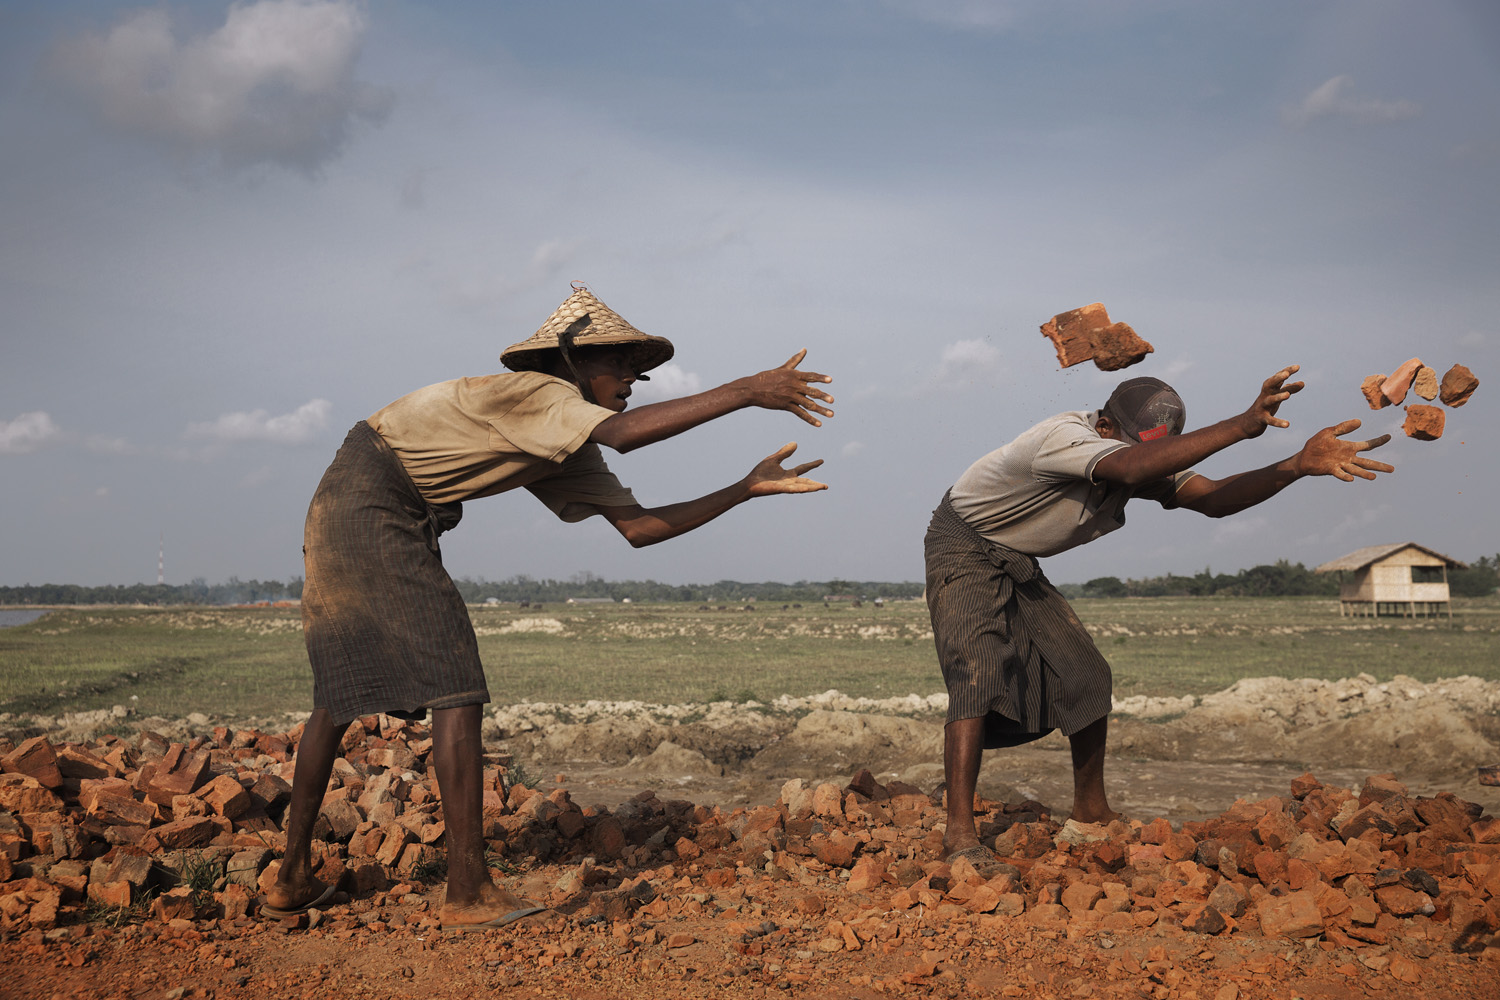 Workers at a brick kiln are seen tossing bricks.